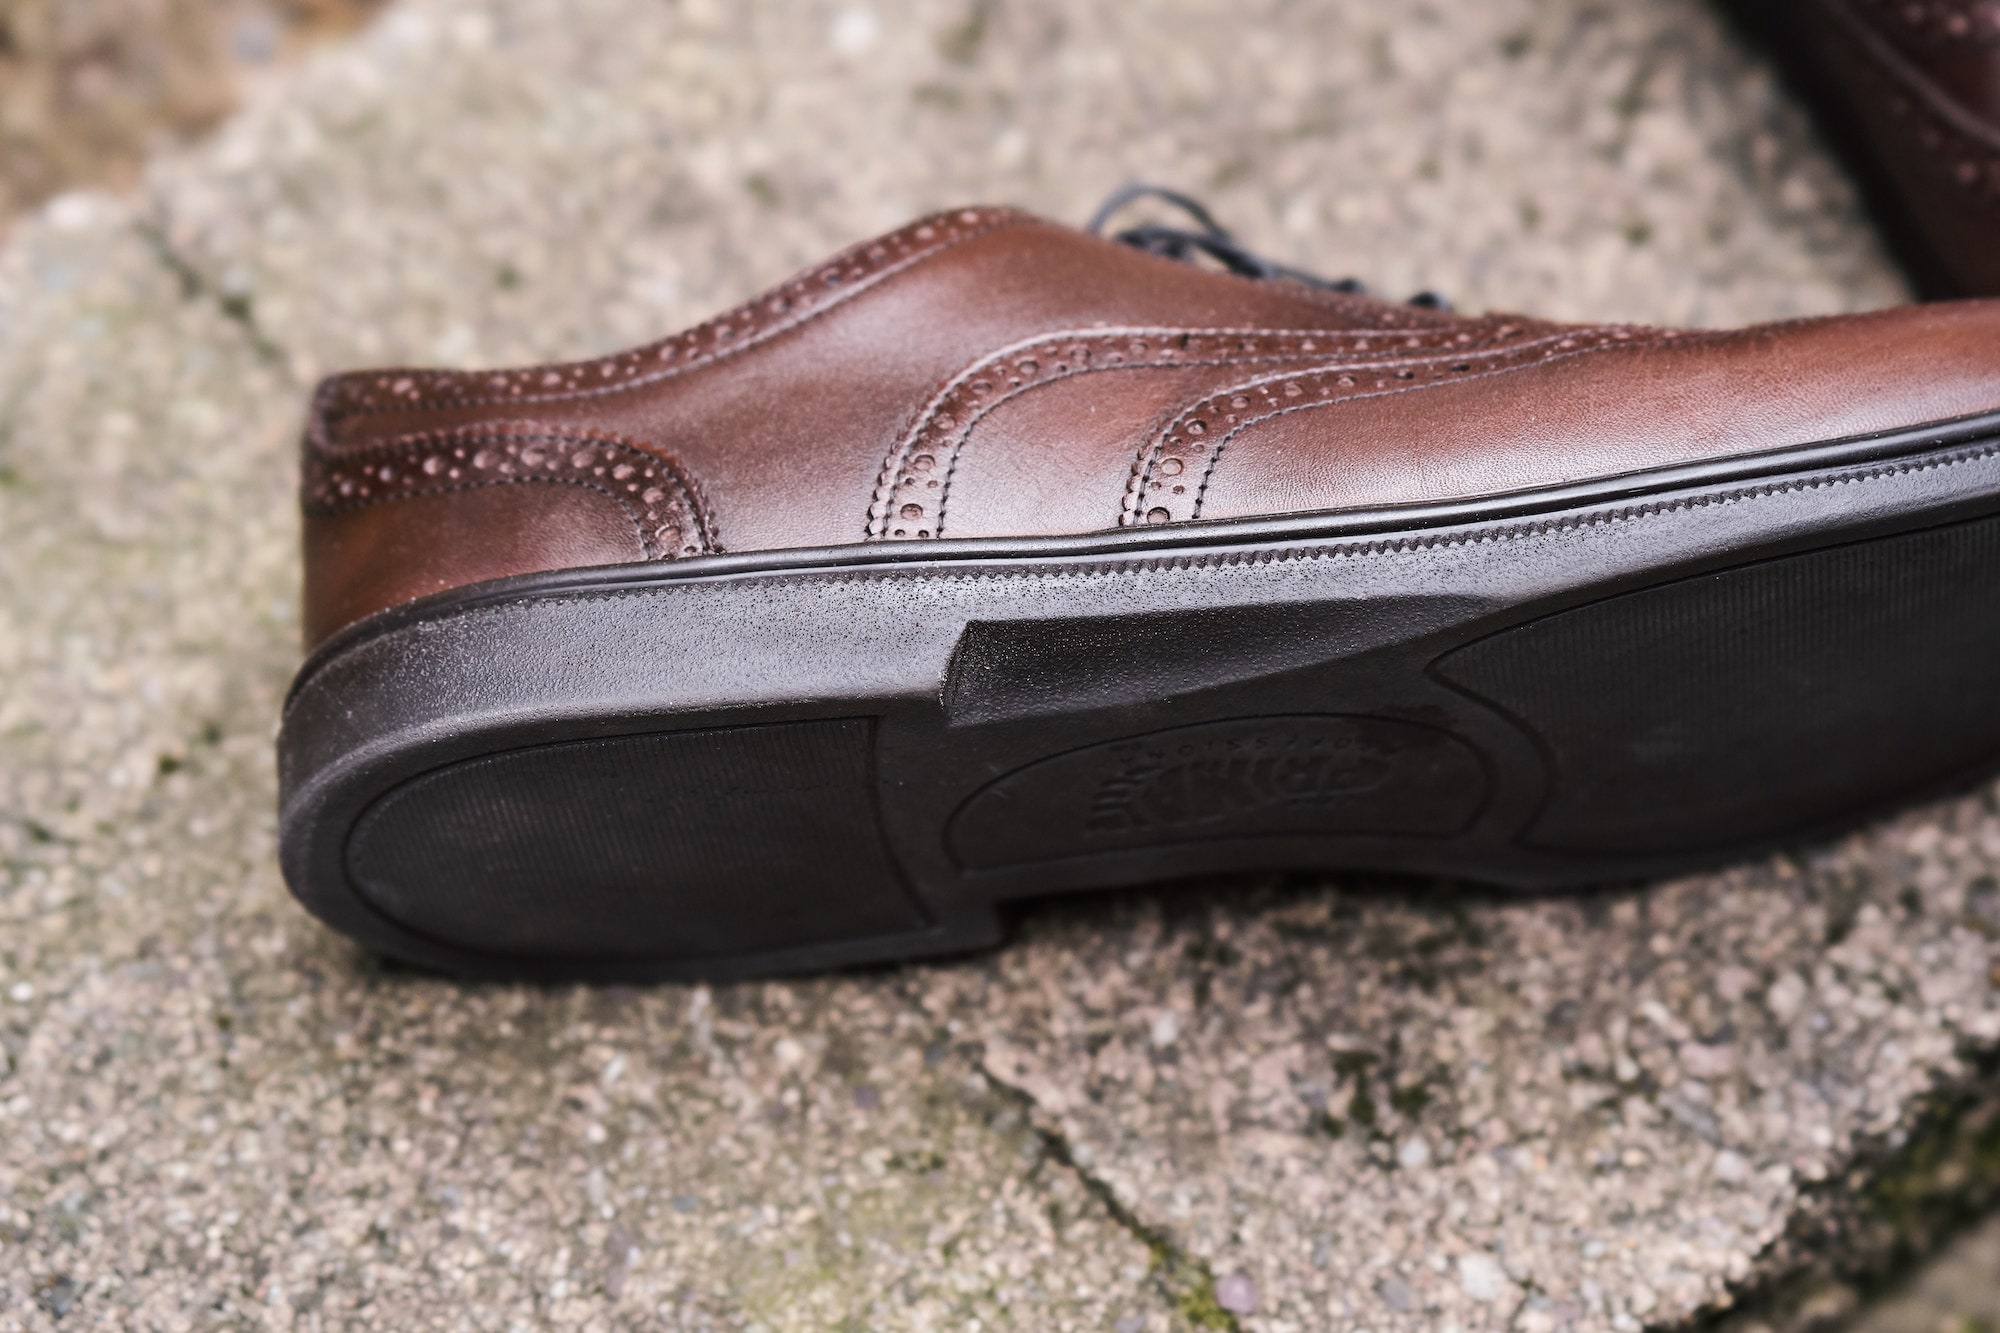 The hidden heel of the Carets Falcon gives this zero drop shoe a traditional dress shoe appearance